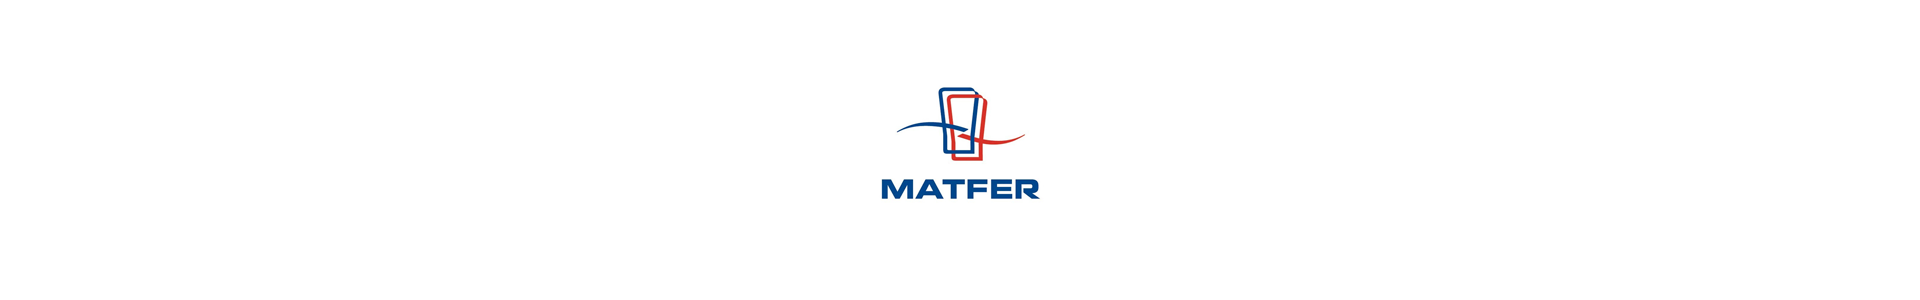 Articles Culinaires Matfer